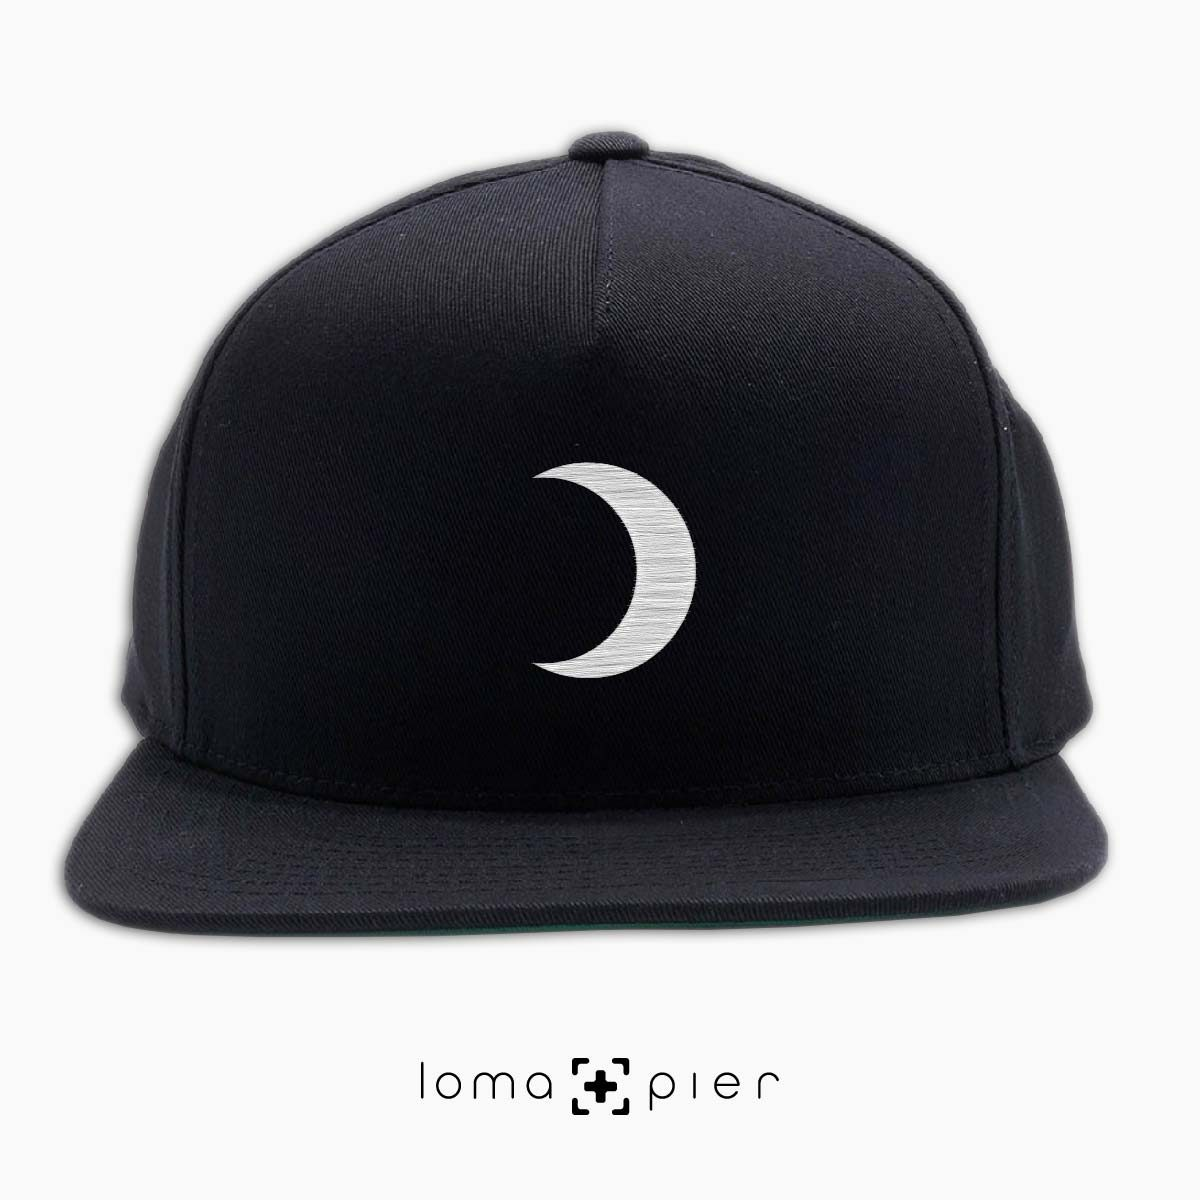 MOON icon embroidered on a black classic snapback hat by loma+pier hat store